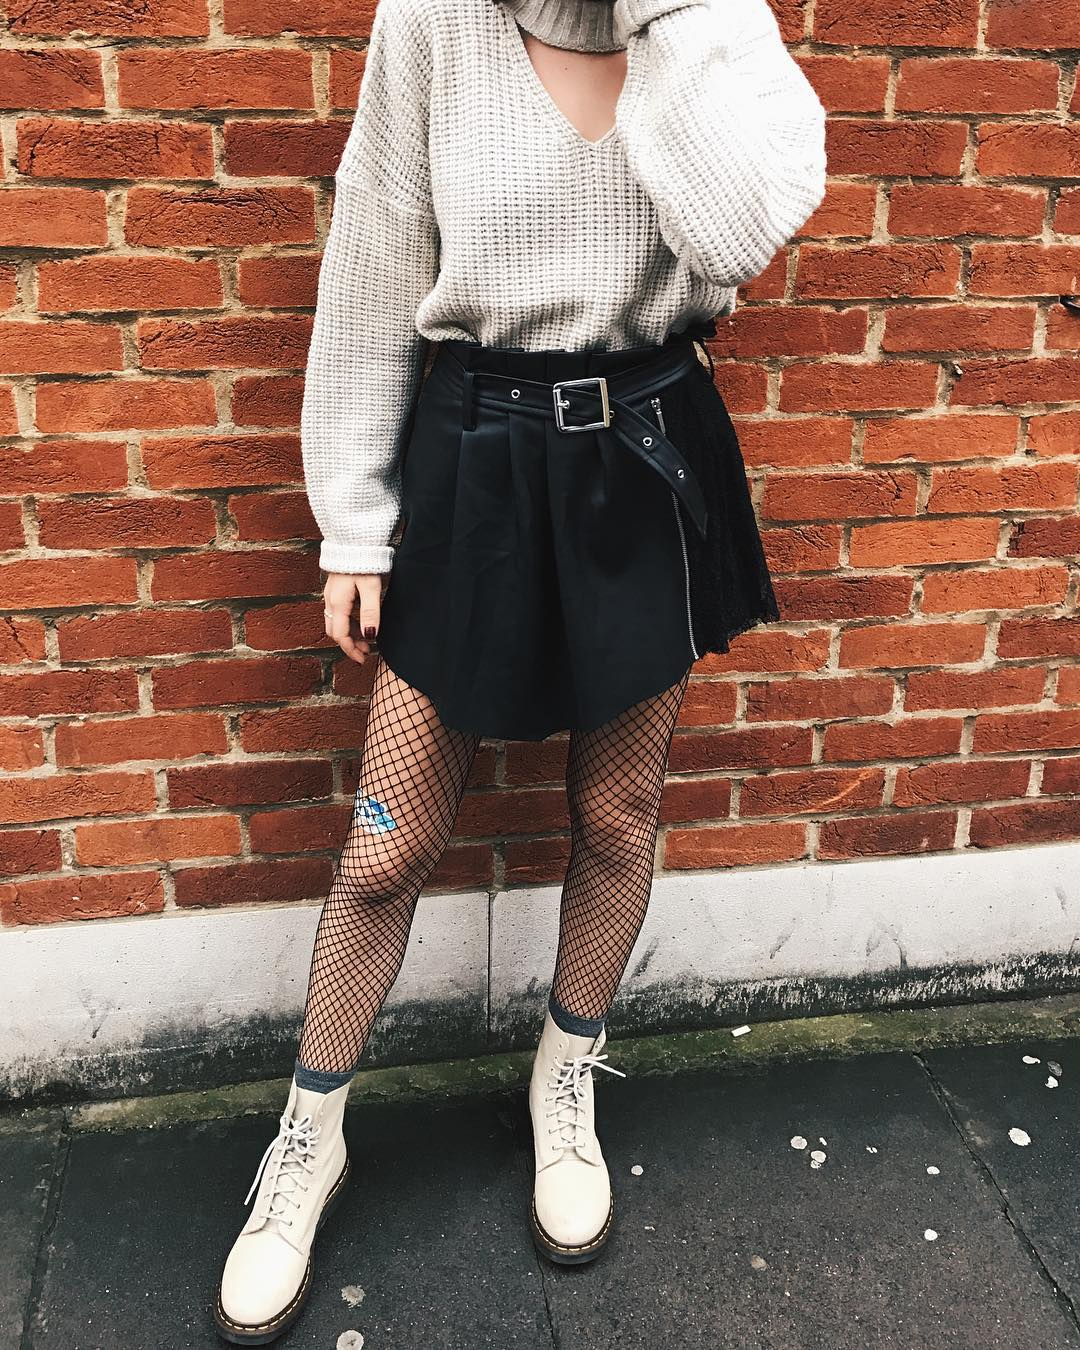 Sweater and Skirt Fishnet Outfit